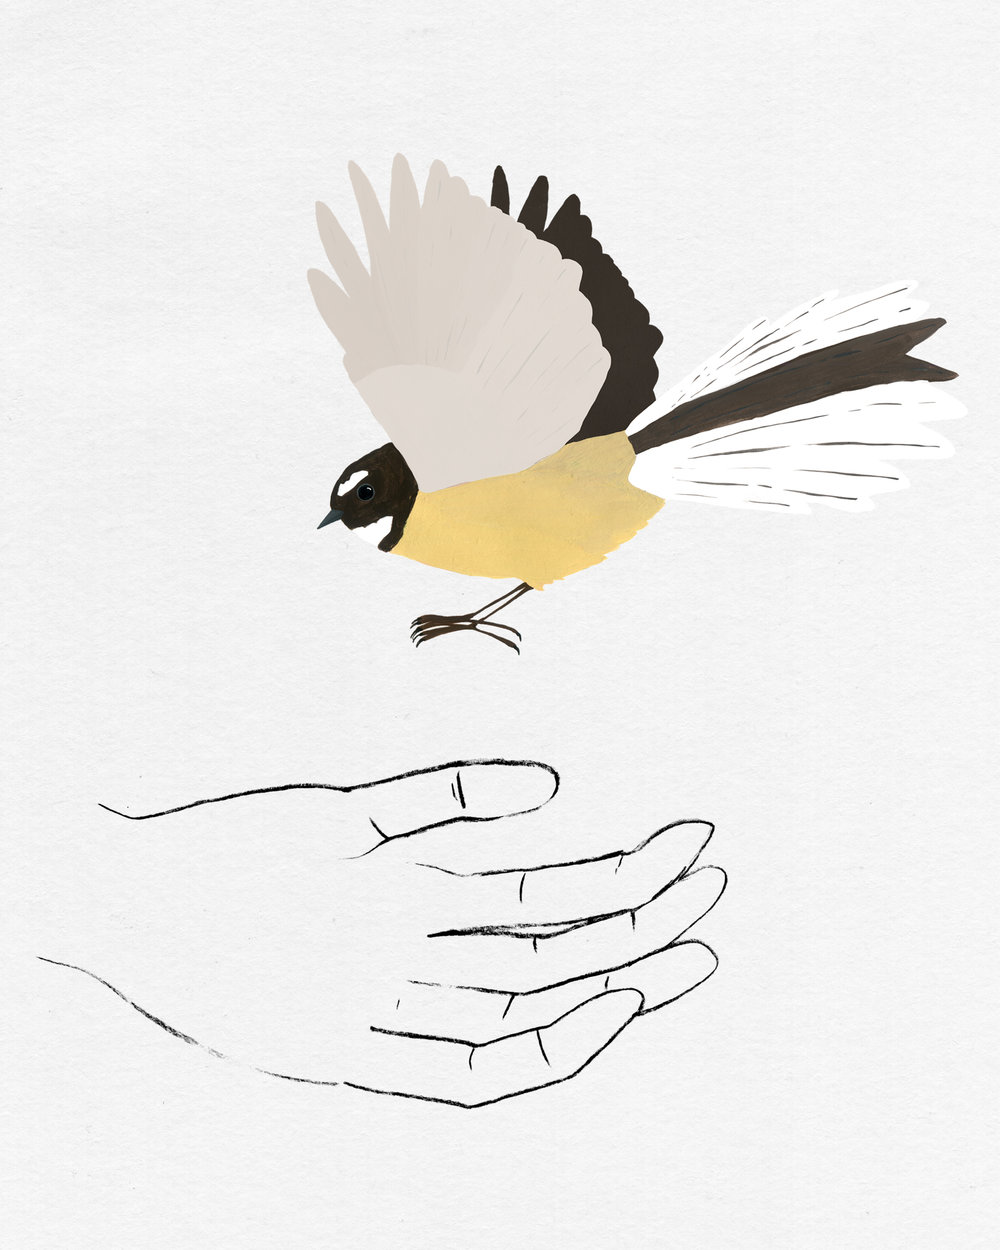 bird in hand series - fantail